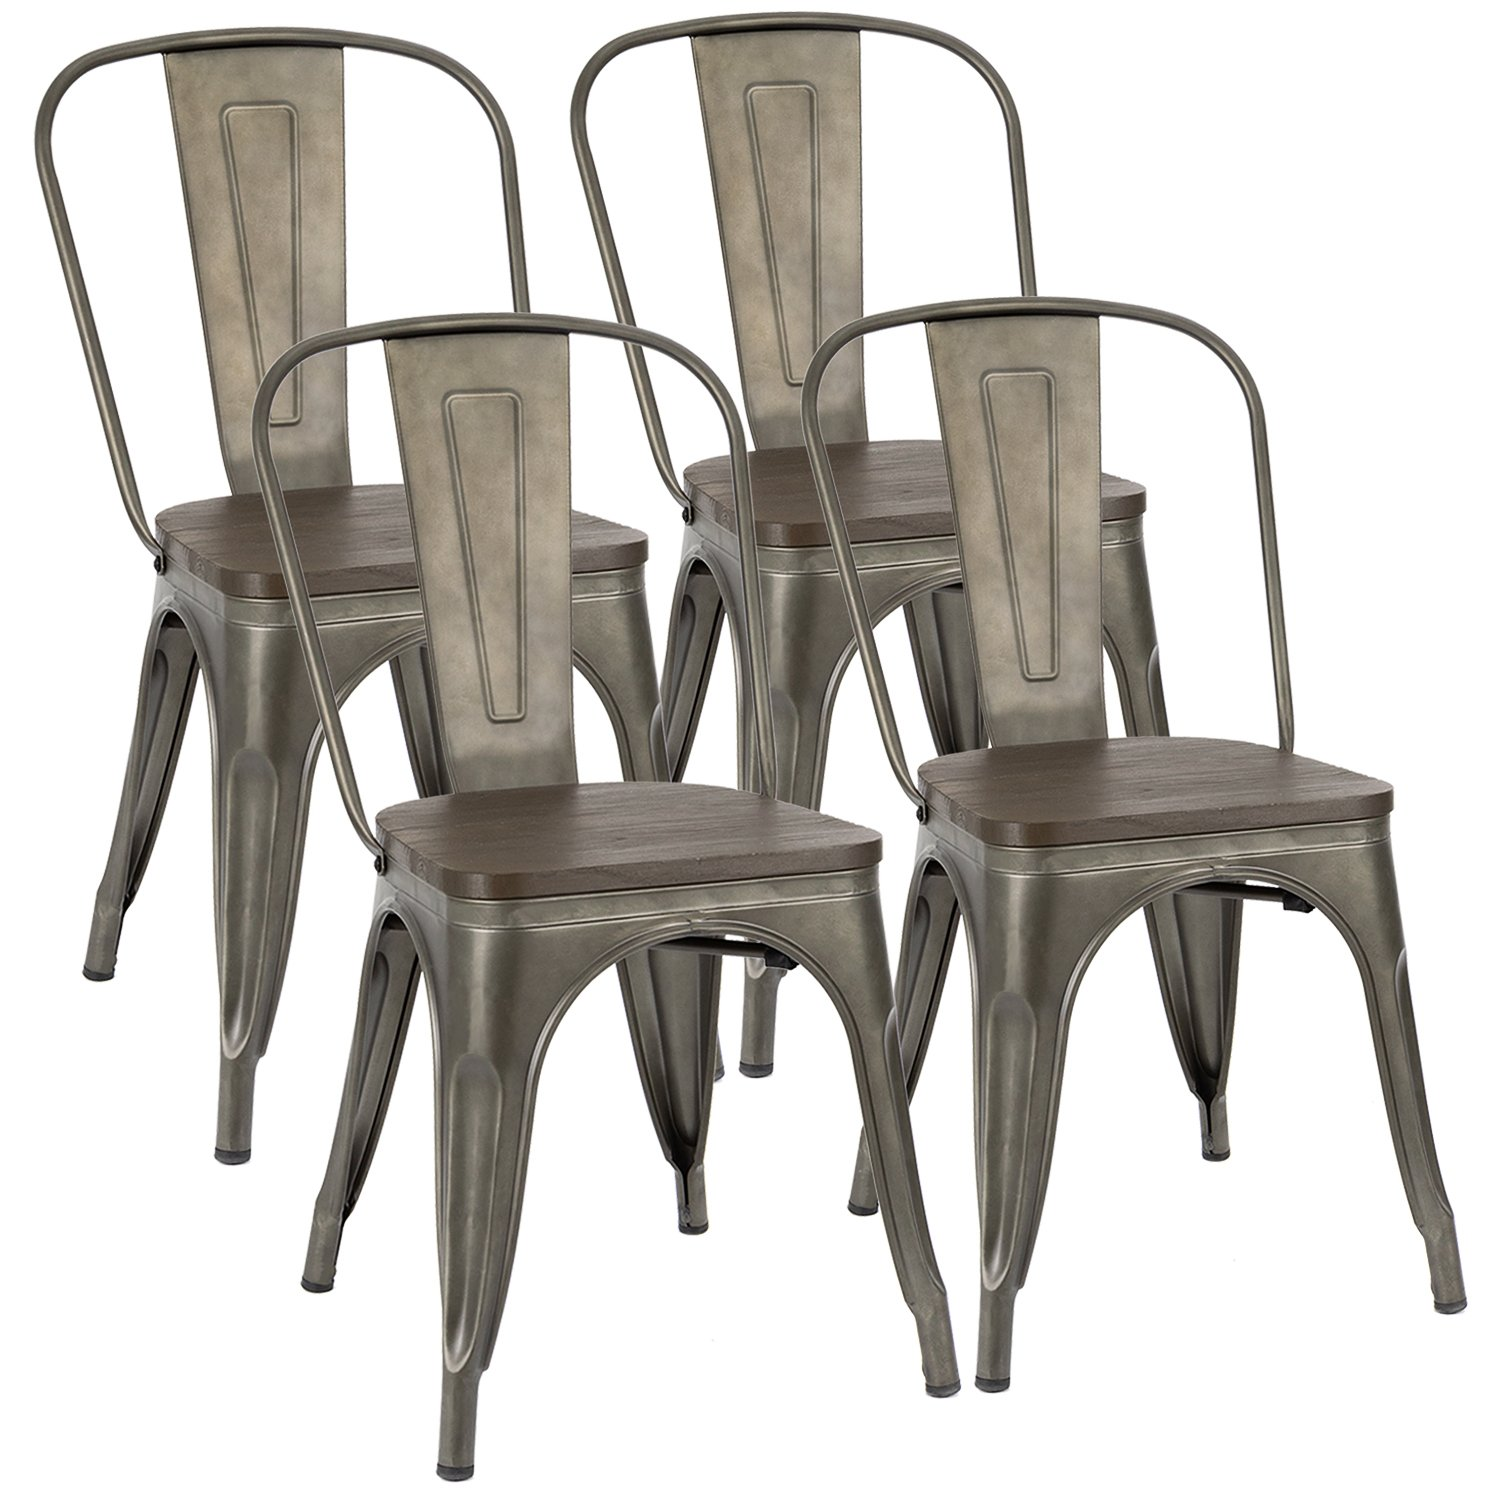 Furmax Metal Dining Chair with Wood Seat,Indoor-Outdoor Use Stackable Chic Dining Bistro Cafe Side Metal Chairs (Set of 4) (Gun Metal)